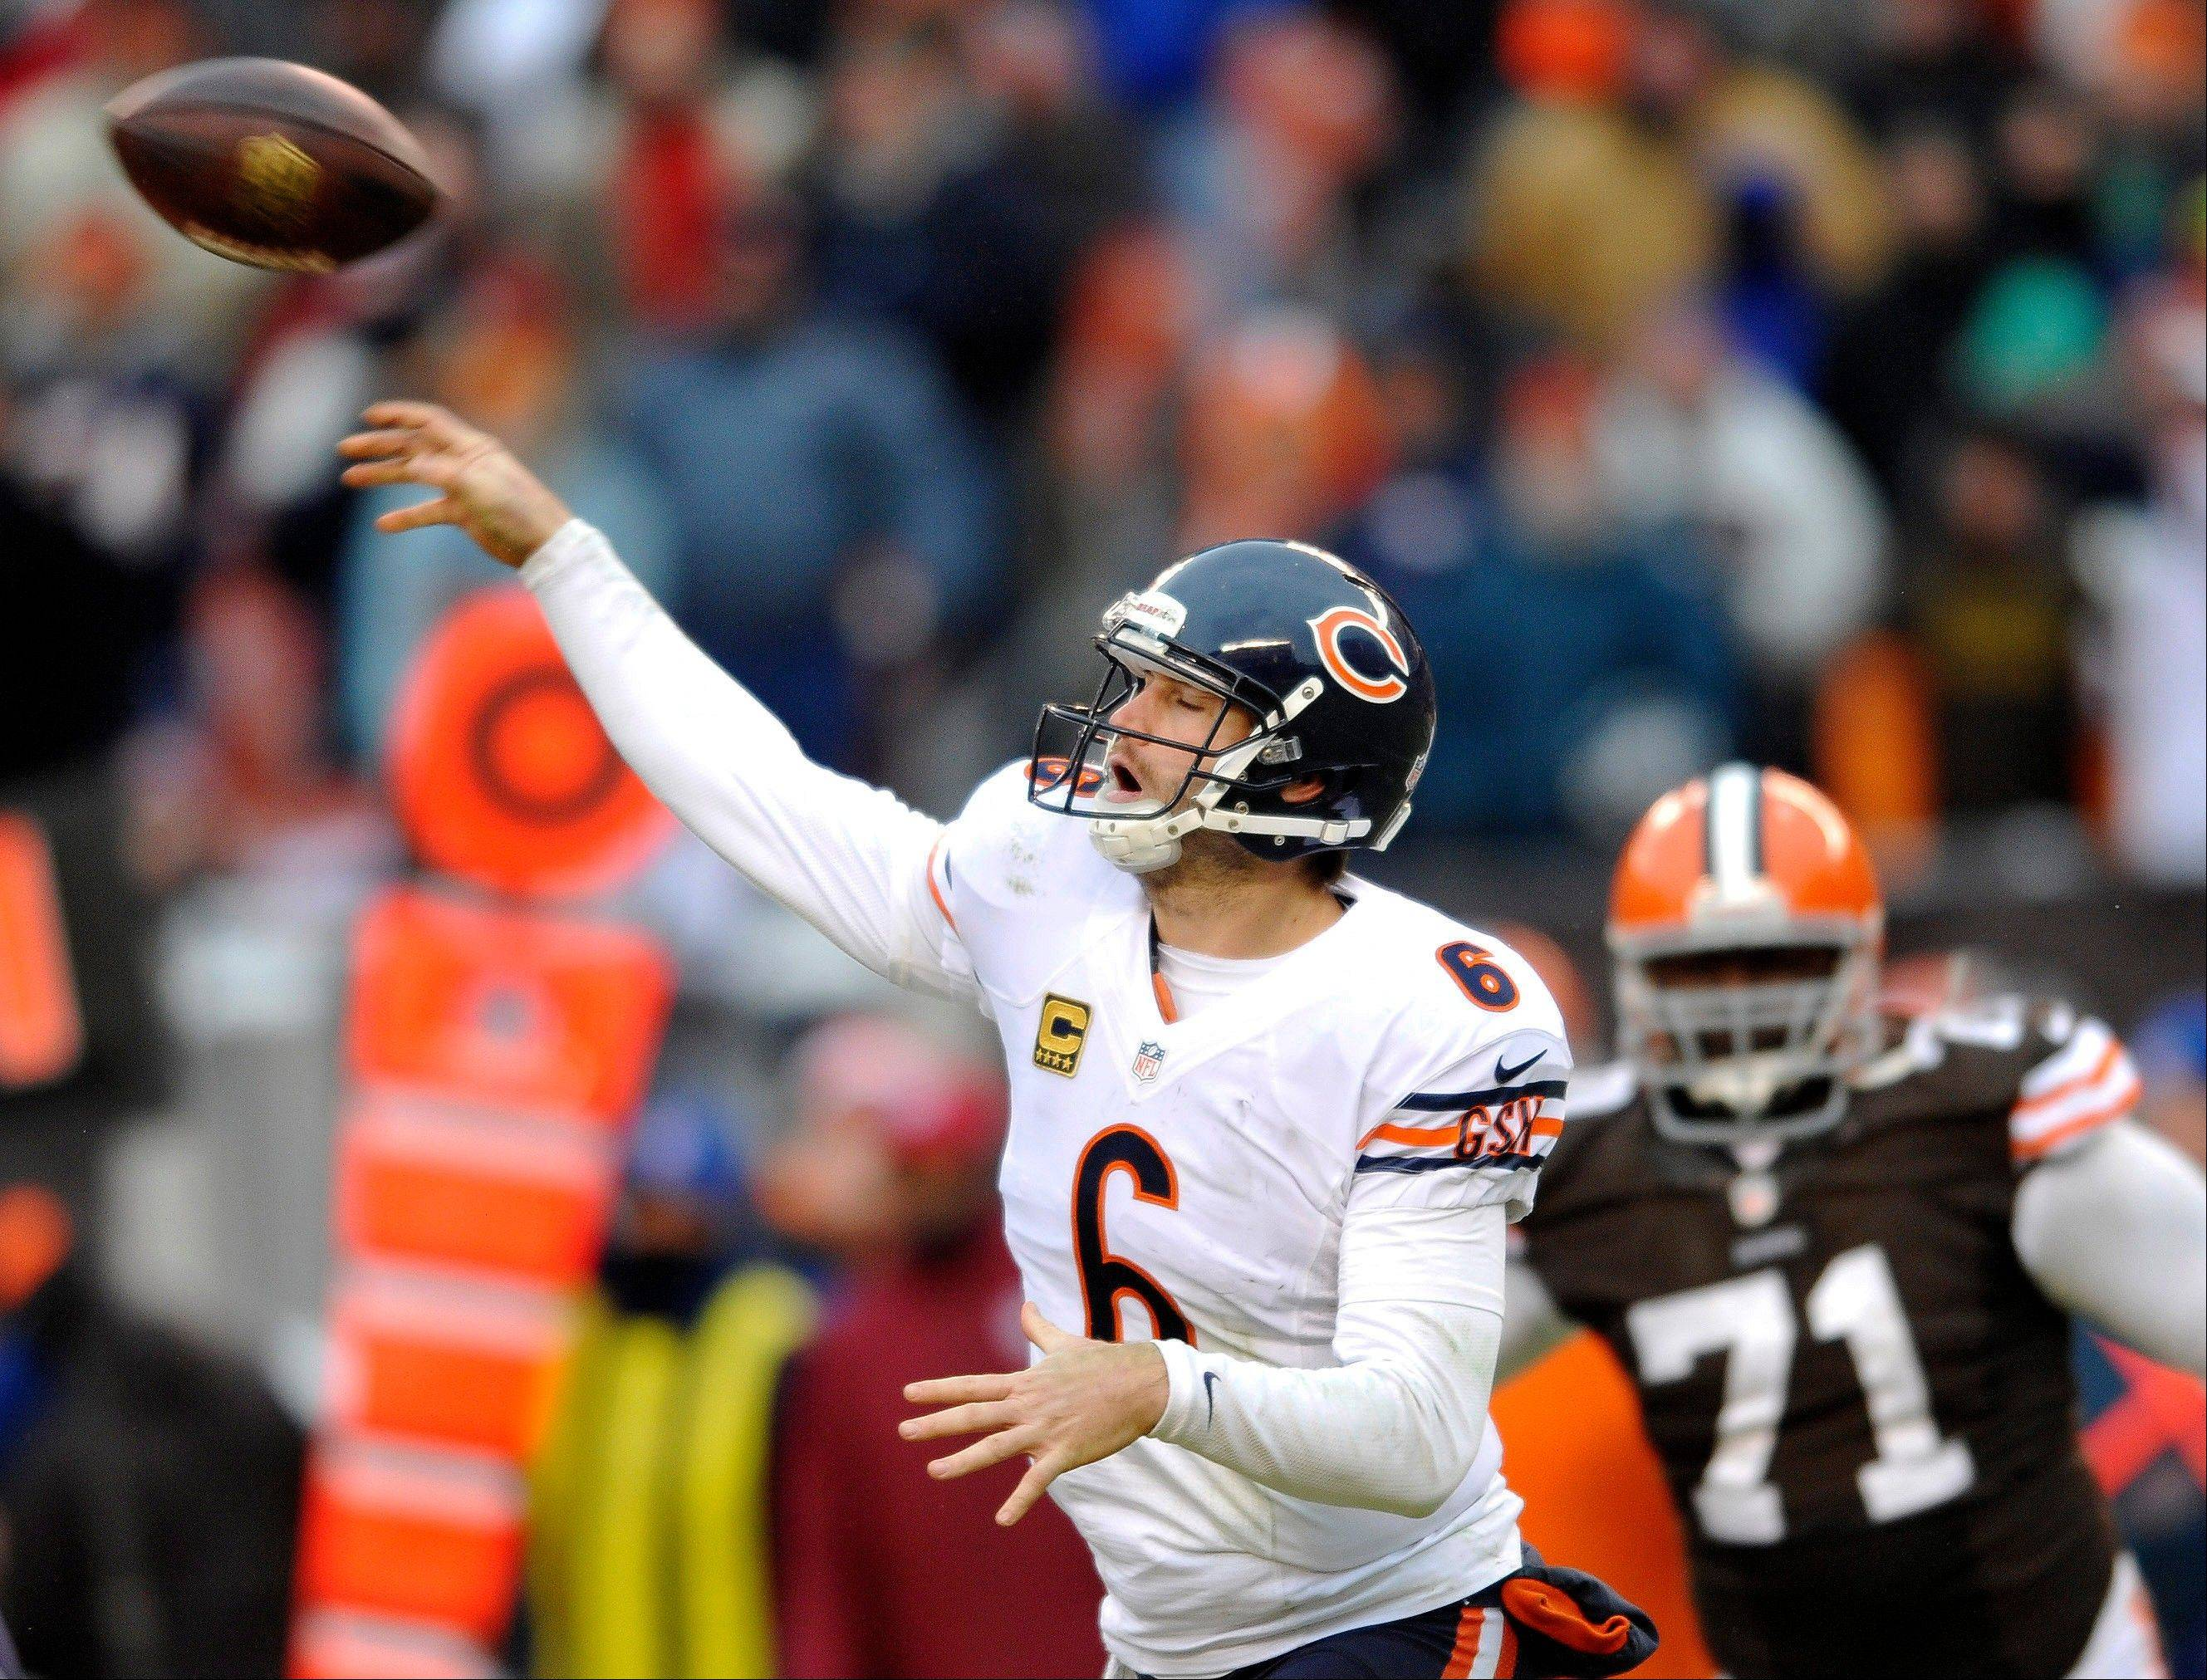 Cutler returns, keeps Bears in playoff hunt